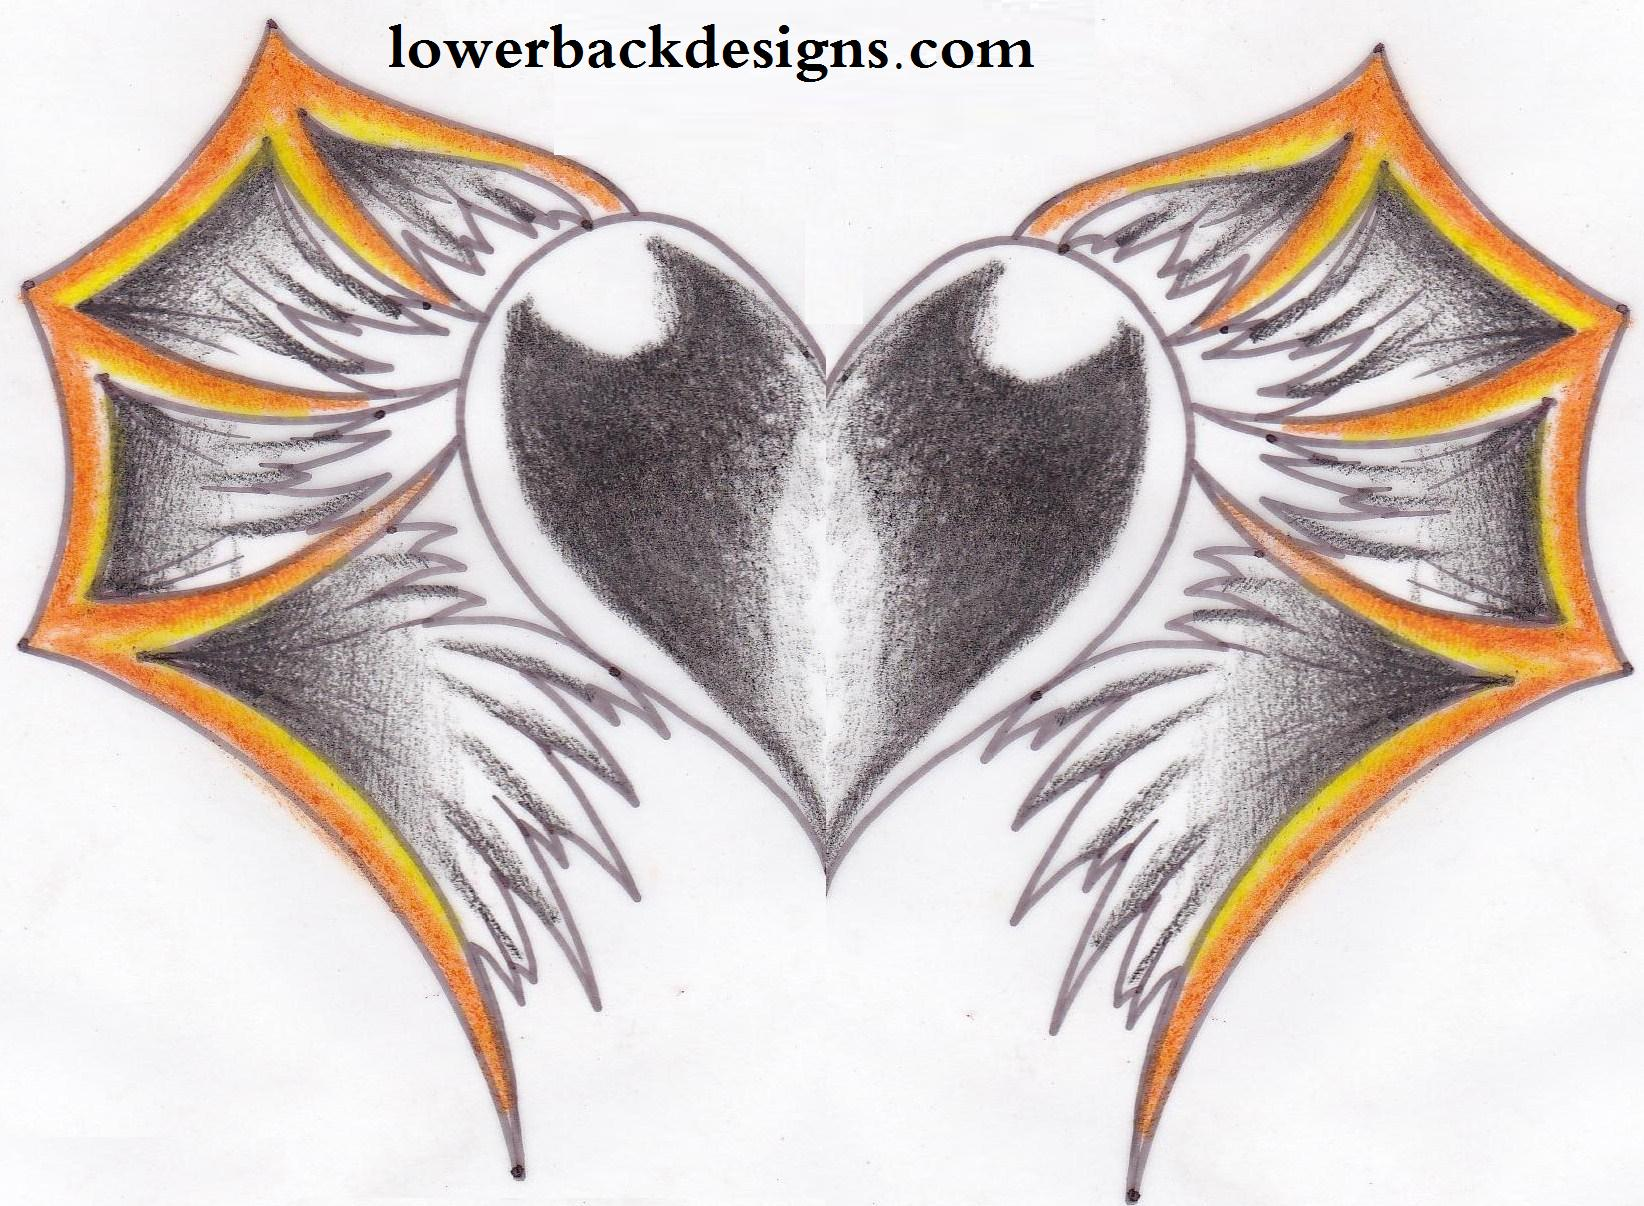 ash harrison head tattoo designs in 2017 real photo pictures images and sketches tattoo. Black Bedroom Furniture Sets. Home Design Ideas